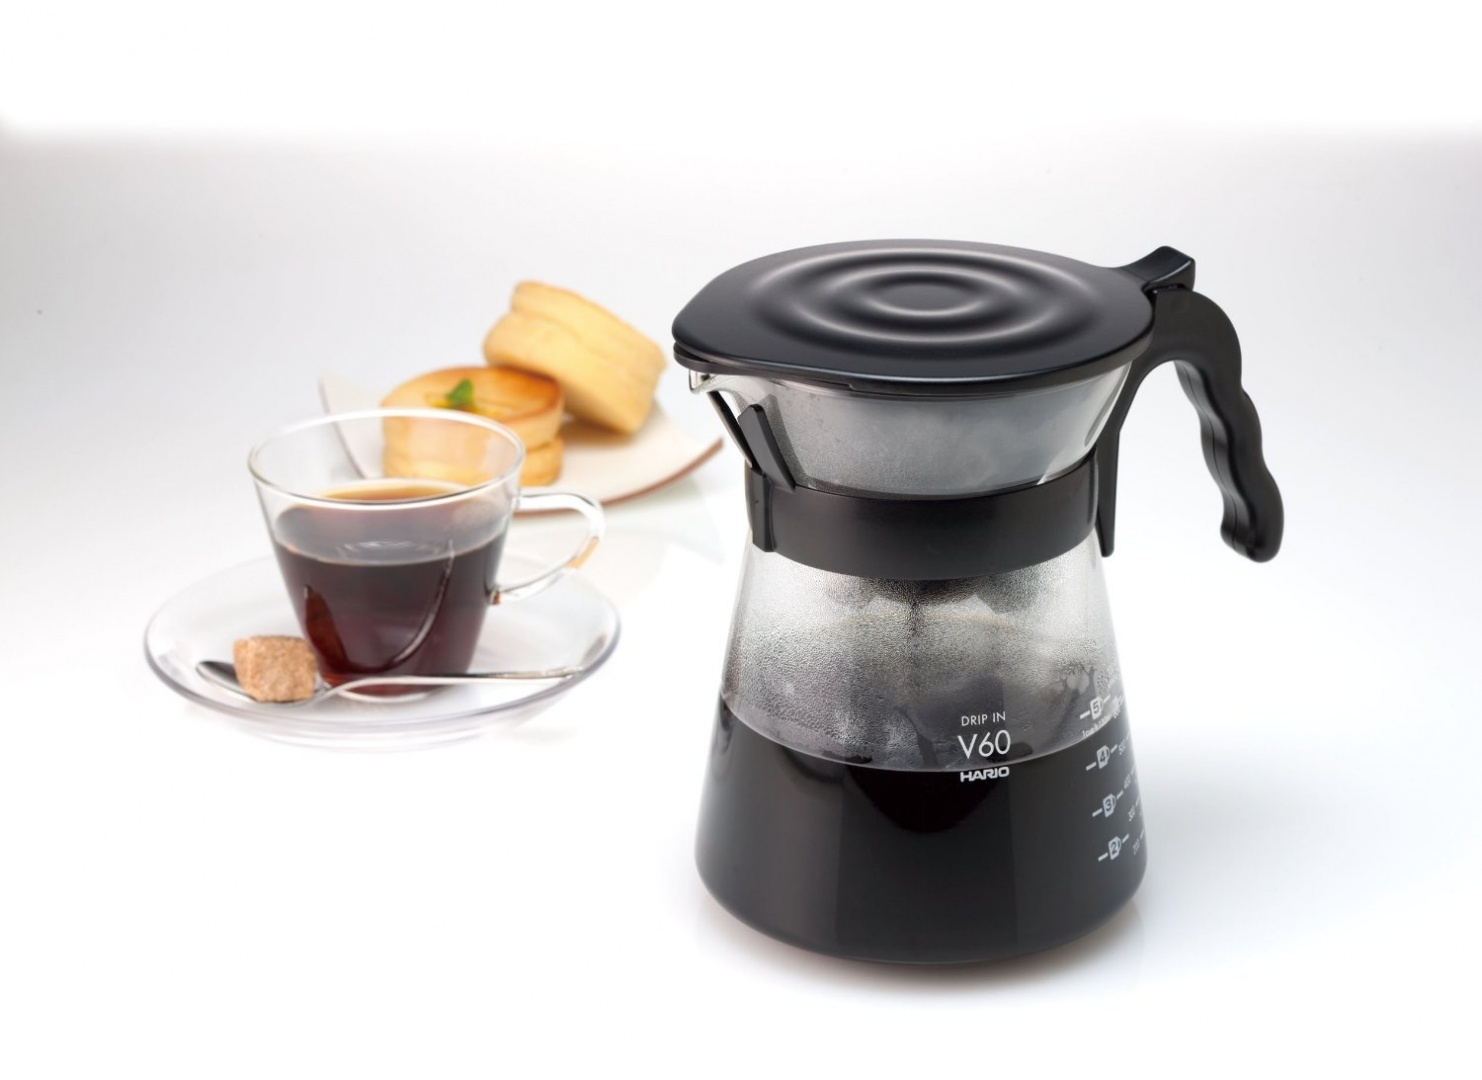 Siphon Coffee Maker Kitchen Buy Online From Hario V60 Server Kit Vcsd 02 R